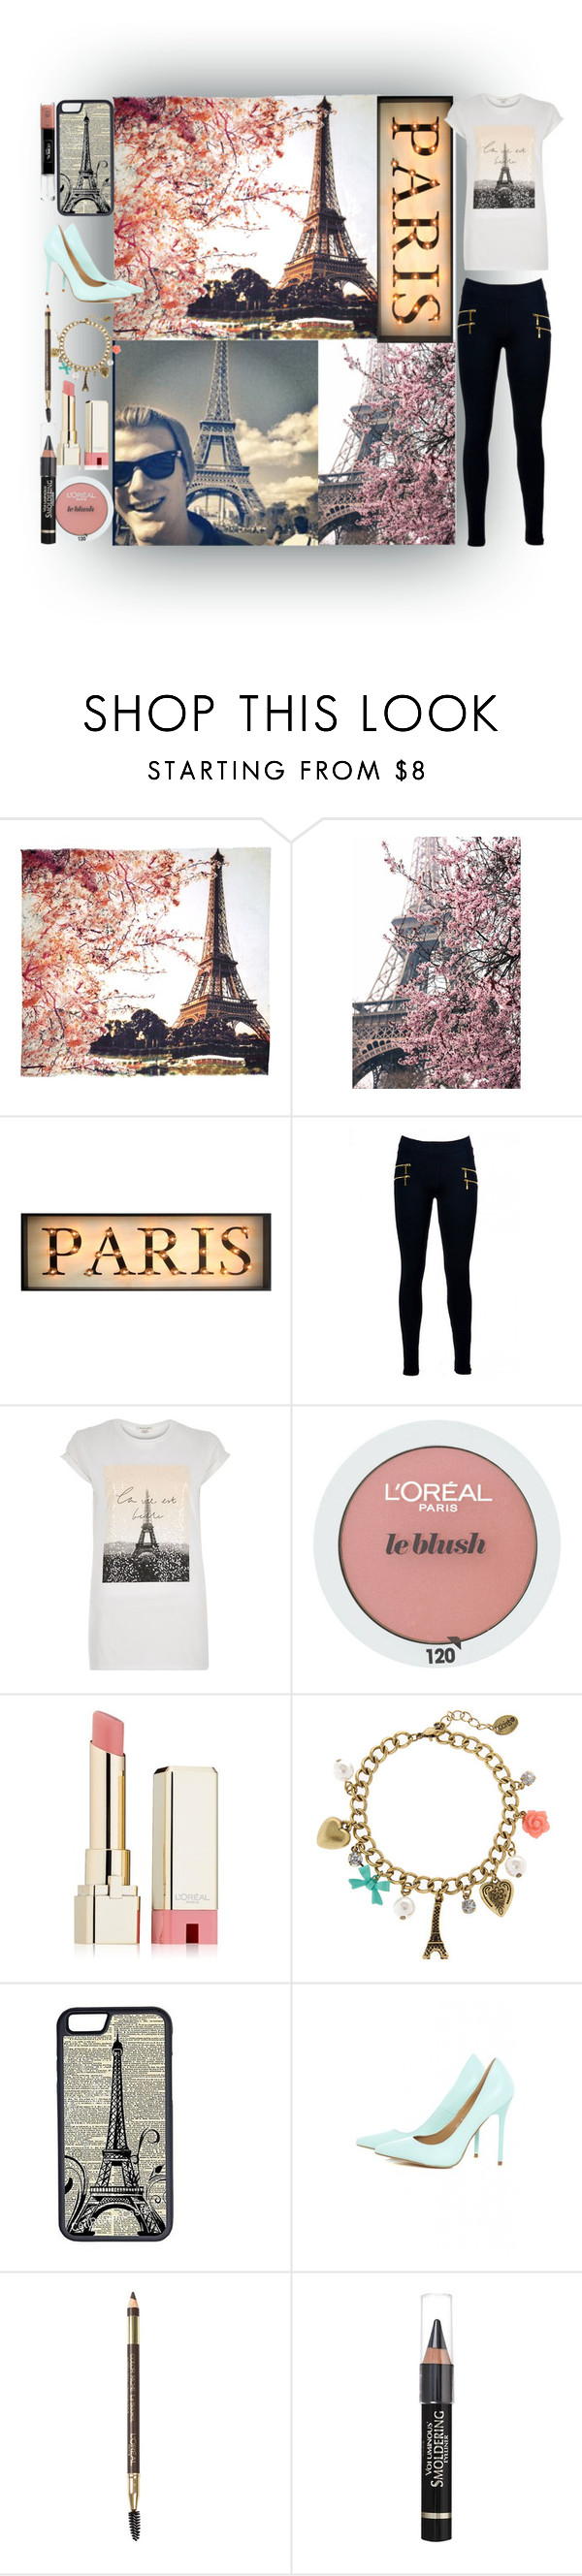 """""""Paris❤"""" by jazzybluerazzy ❤ liked on Polyvore featuring Fay et Fille, Aime, River Island, L'Oréal Paris, claire's, CellPowerCases and AX Paris"""